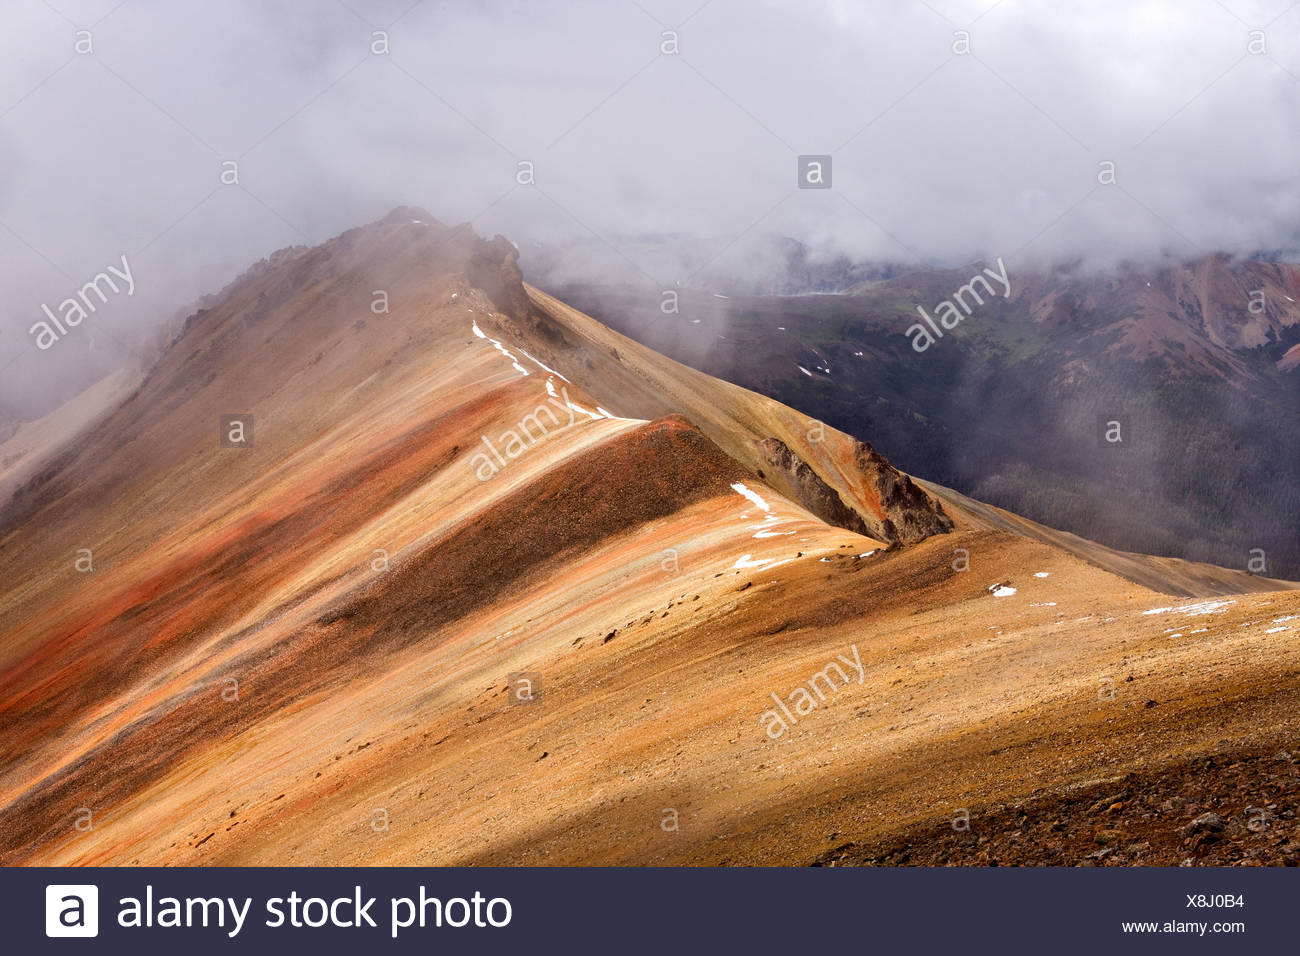 stormy weather on the volcanic slopes of Mackenzie Mountain in Tweedsmuir Park in British Columbia Canada - Stock Image